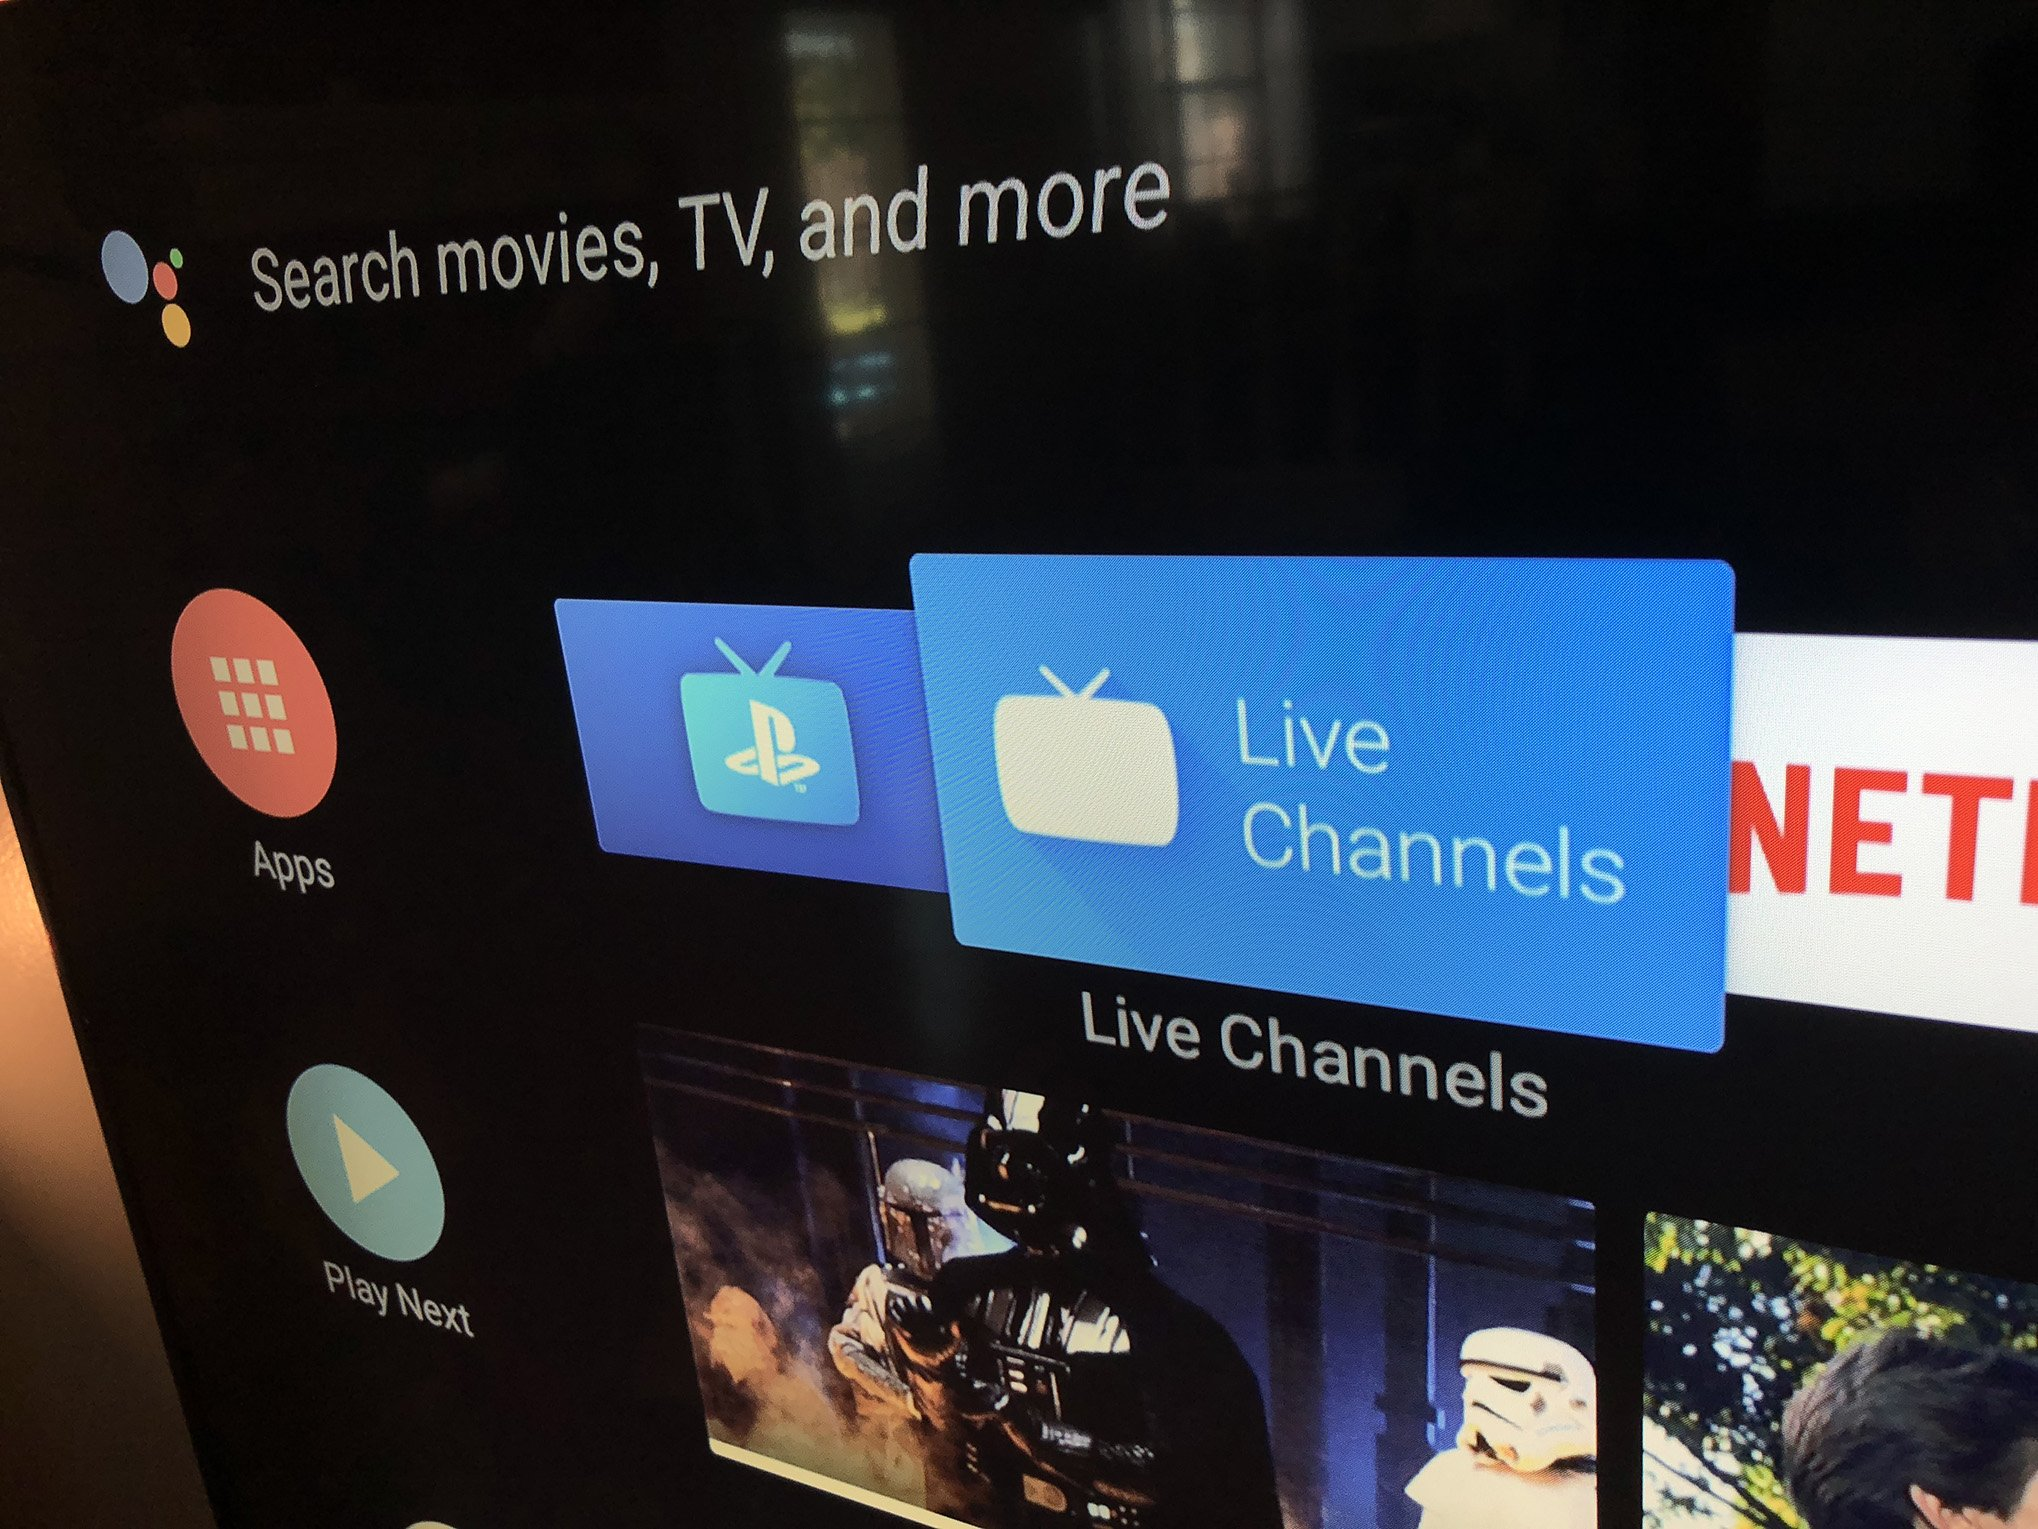 Android Tv S Live Channels Is A Great App That You Re Probably Not Using Whattowatch